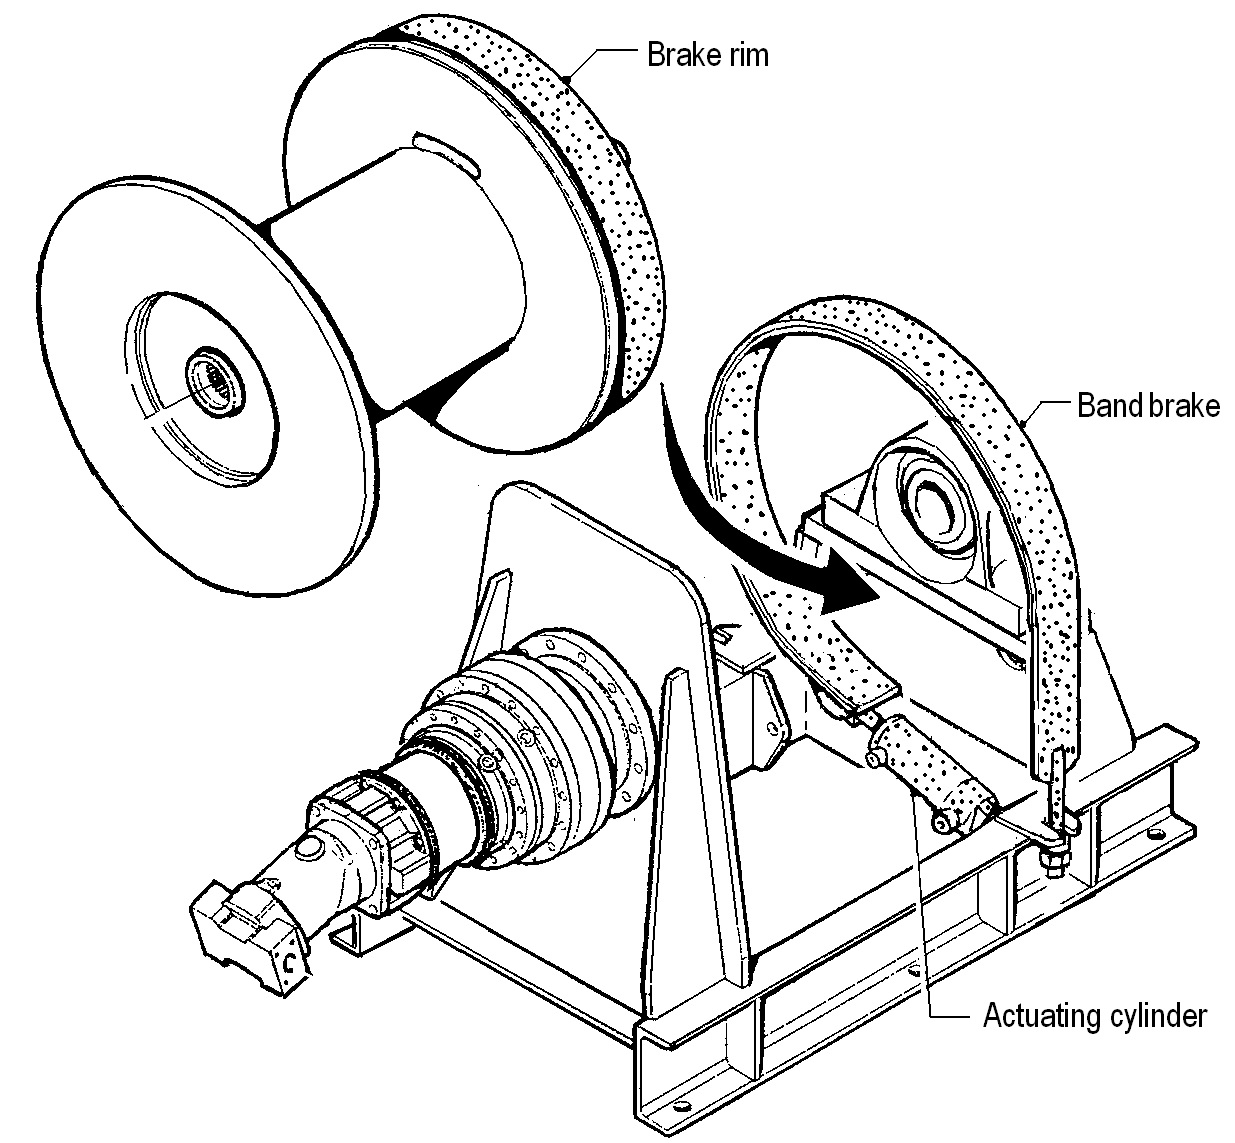 A Motor Driven Winch Pulls